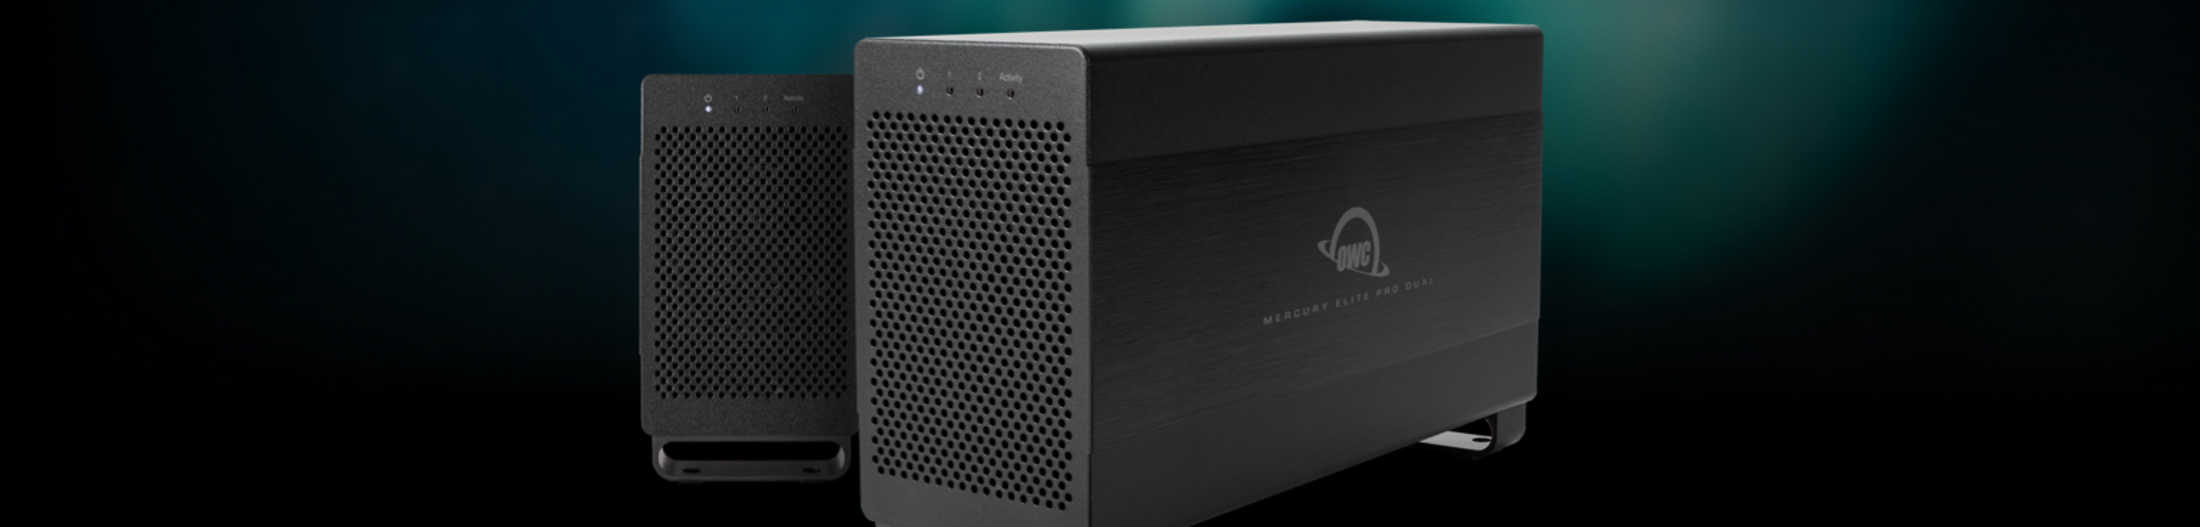 Thunderbolt 2 External Hard Drives And Storage Solutions